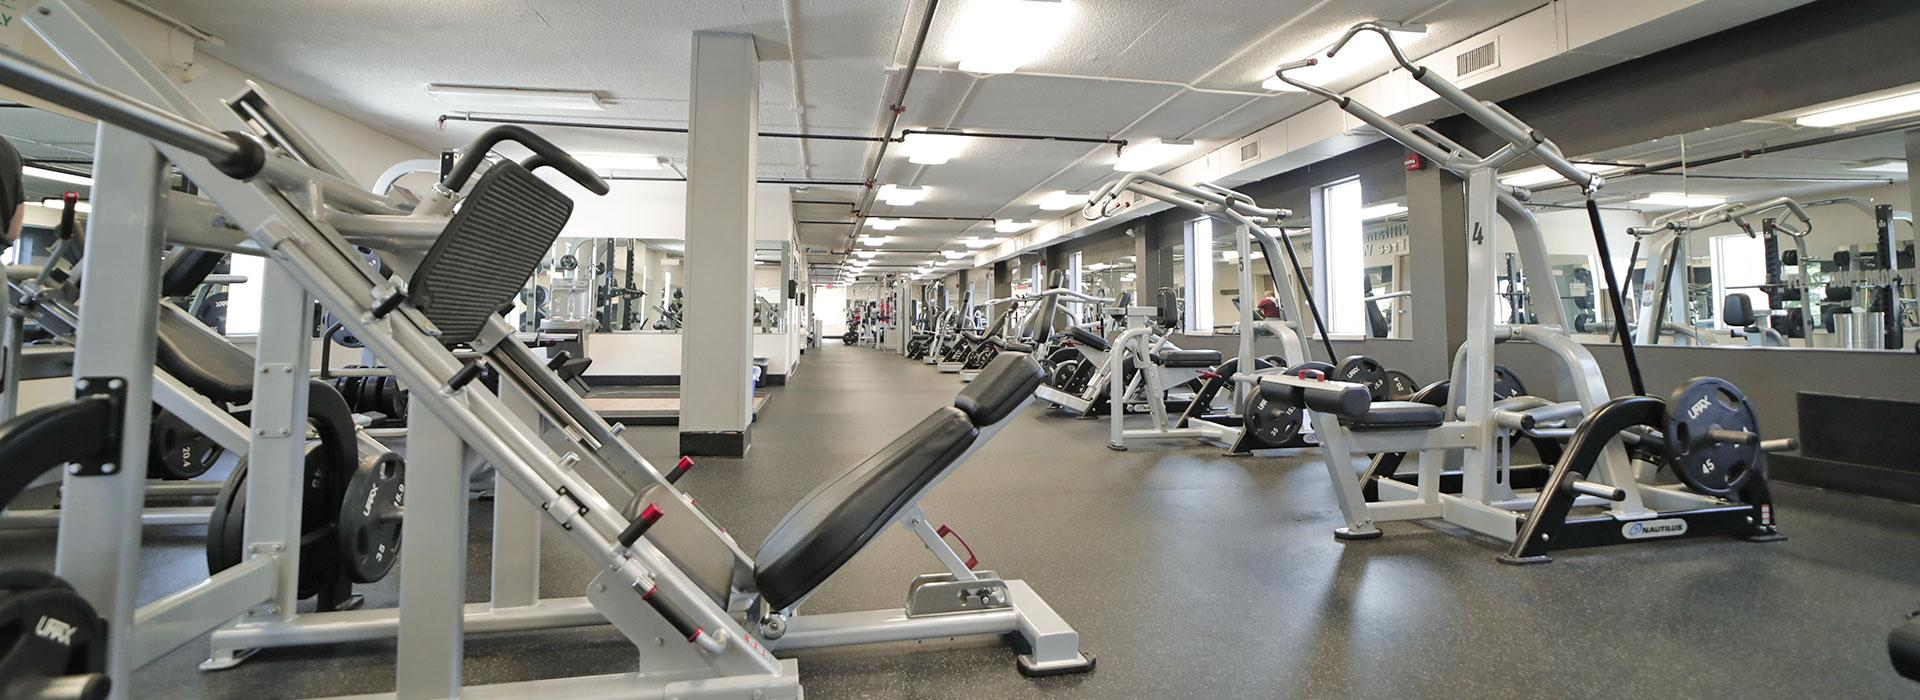 BLO-fitness-center-3rd-floor-v2